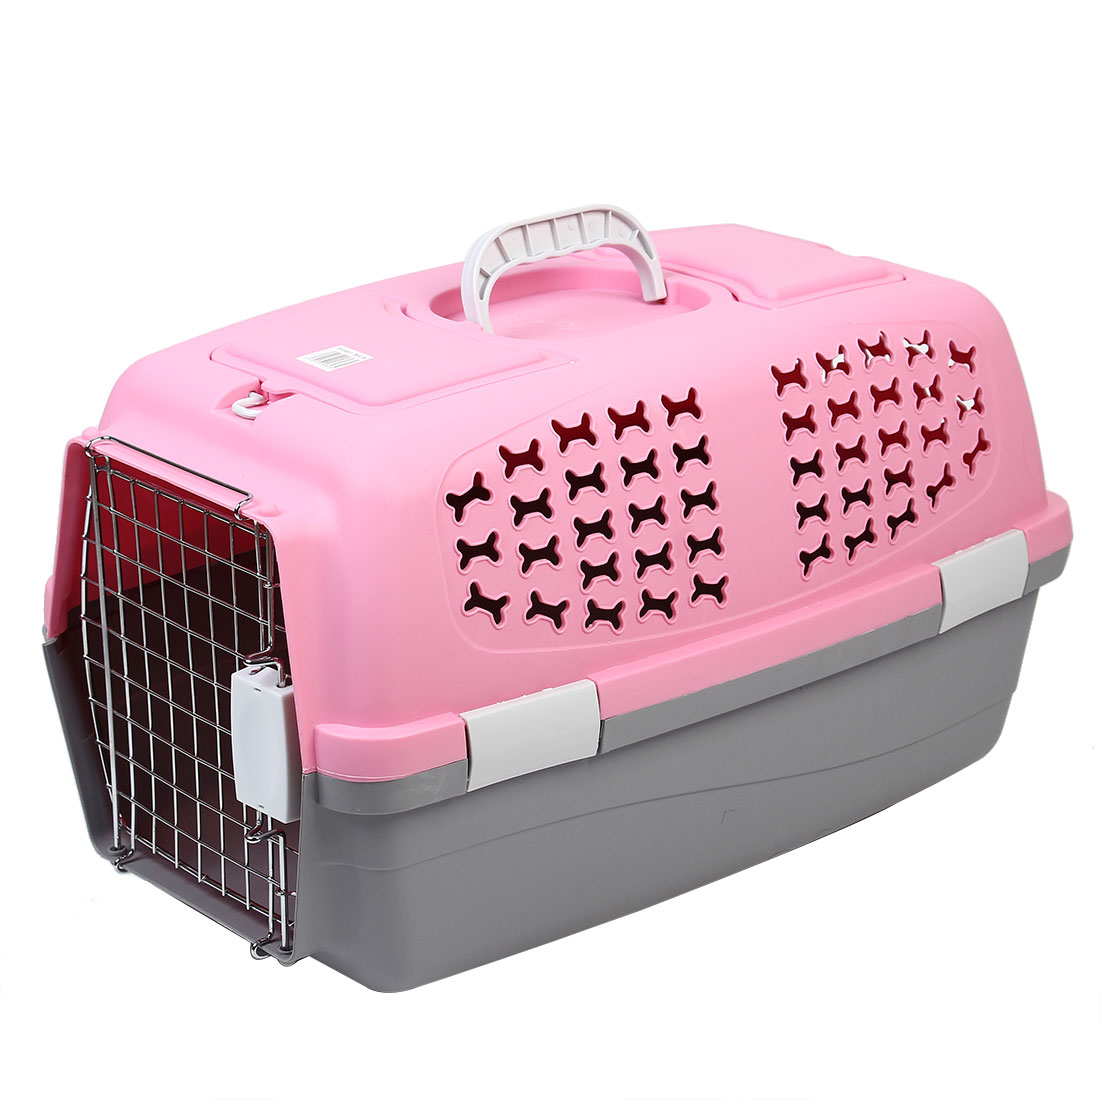 Travel Portable Plastic Transport Cages Airways Box Pet Carrier Pink 47x31x31cm